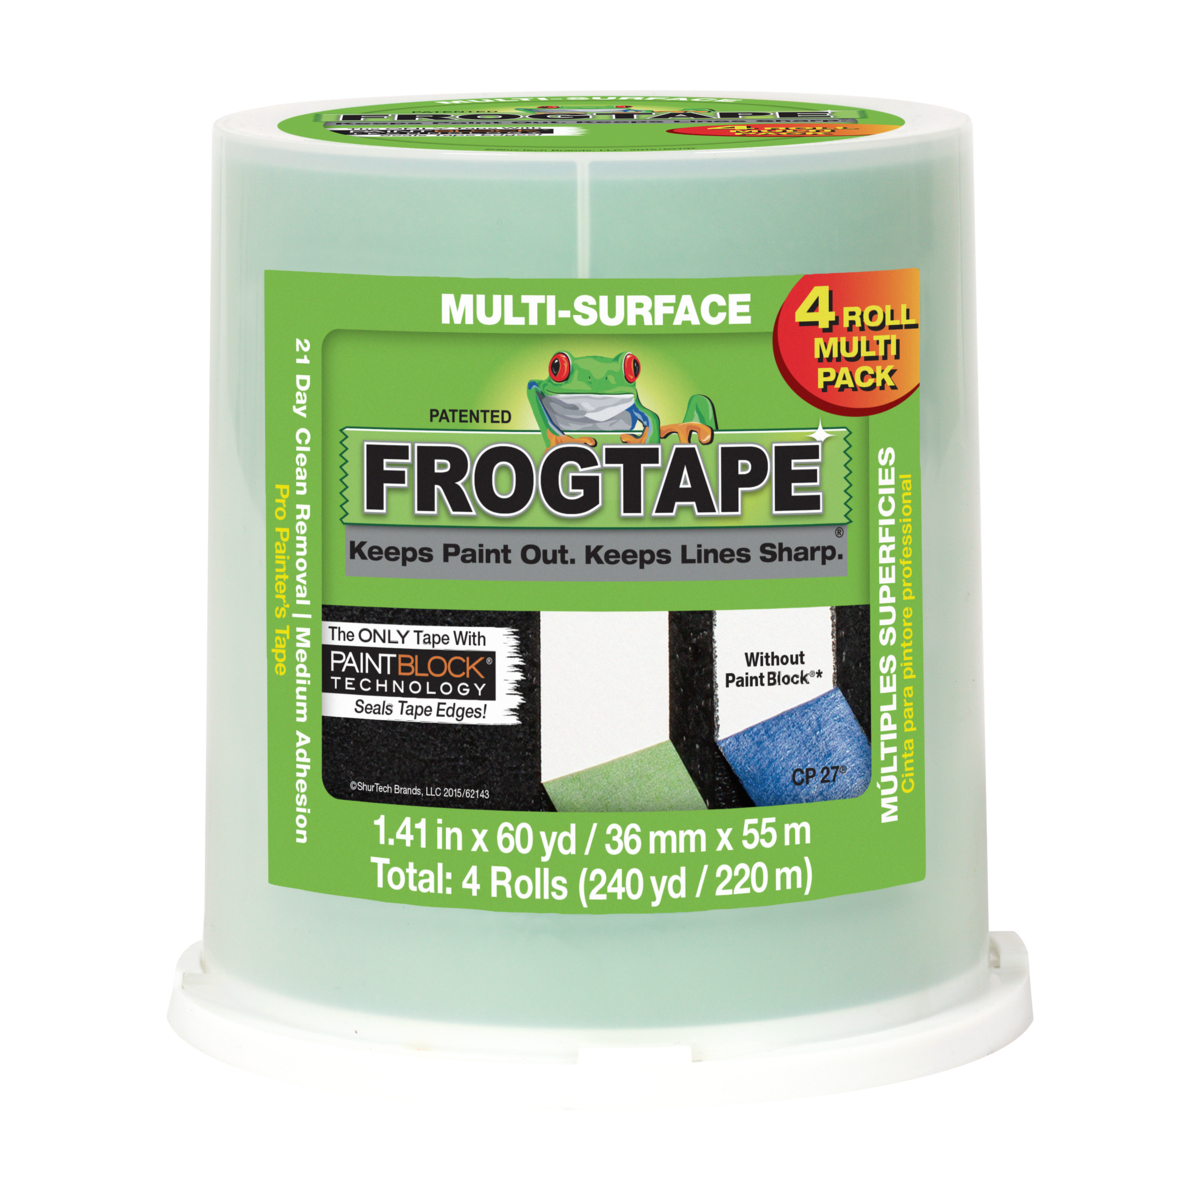 FrogTape Multi-Surface Painter's Tape - Green, 1.41 in. x 60 yd., 4-Pack